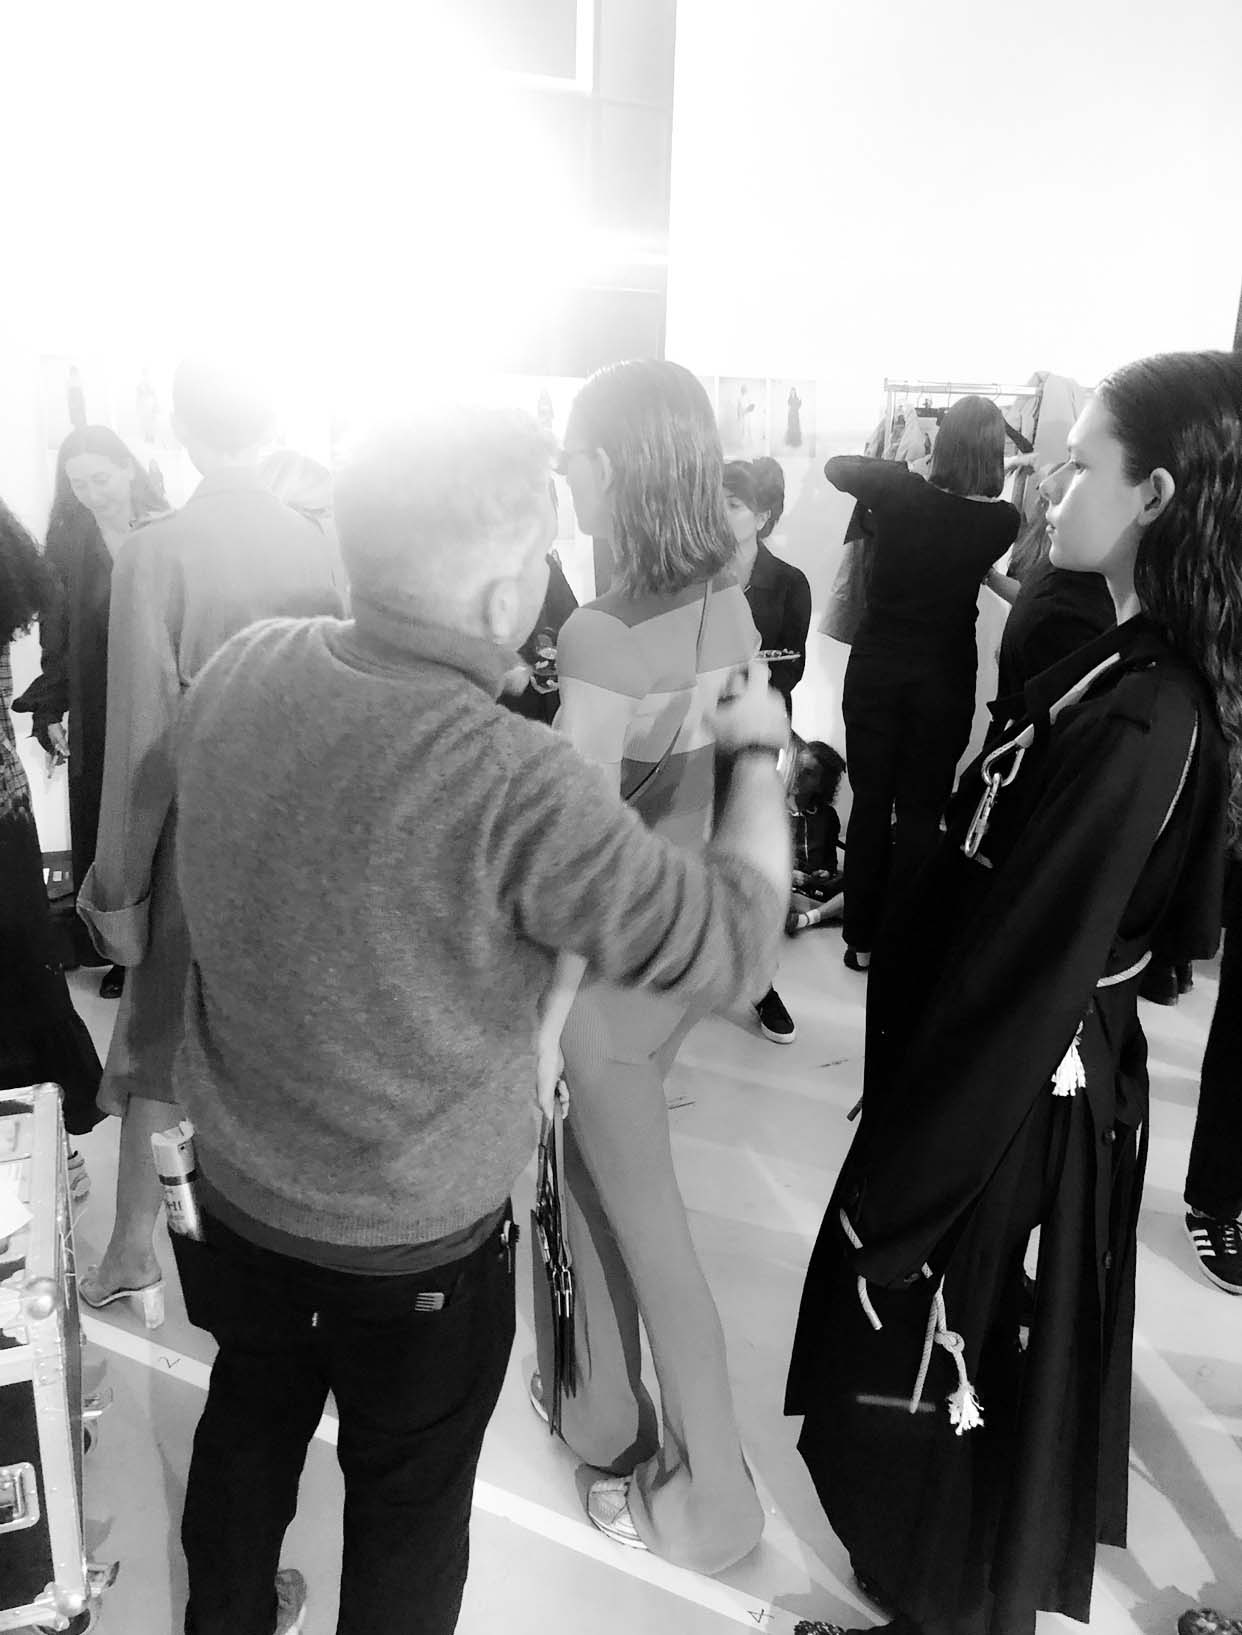 Behind Paris Fashion Week ROKH SS20 with Team Studio Cim Mahony